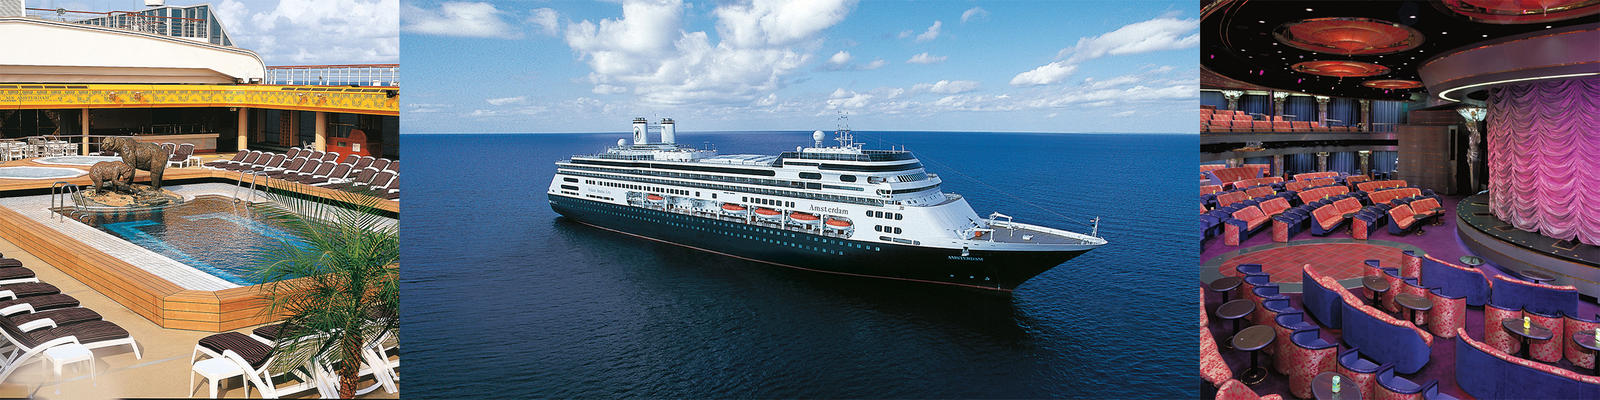 Holland America Amsterdam Cruise Ship Review Photos Departure - Amsterdam cruise ship